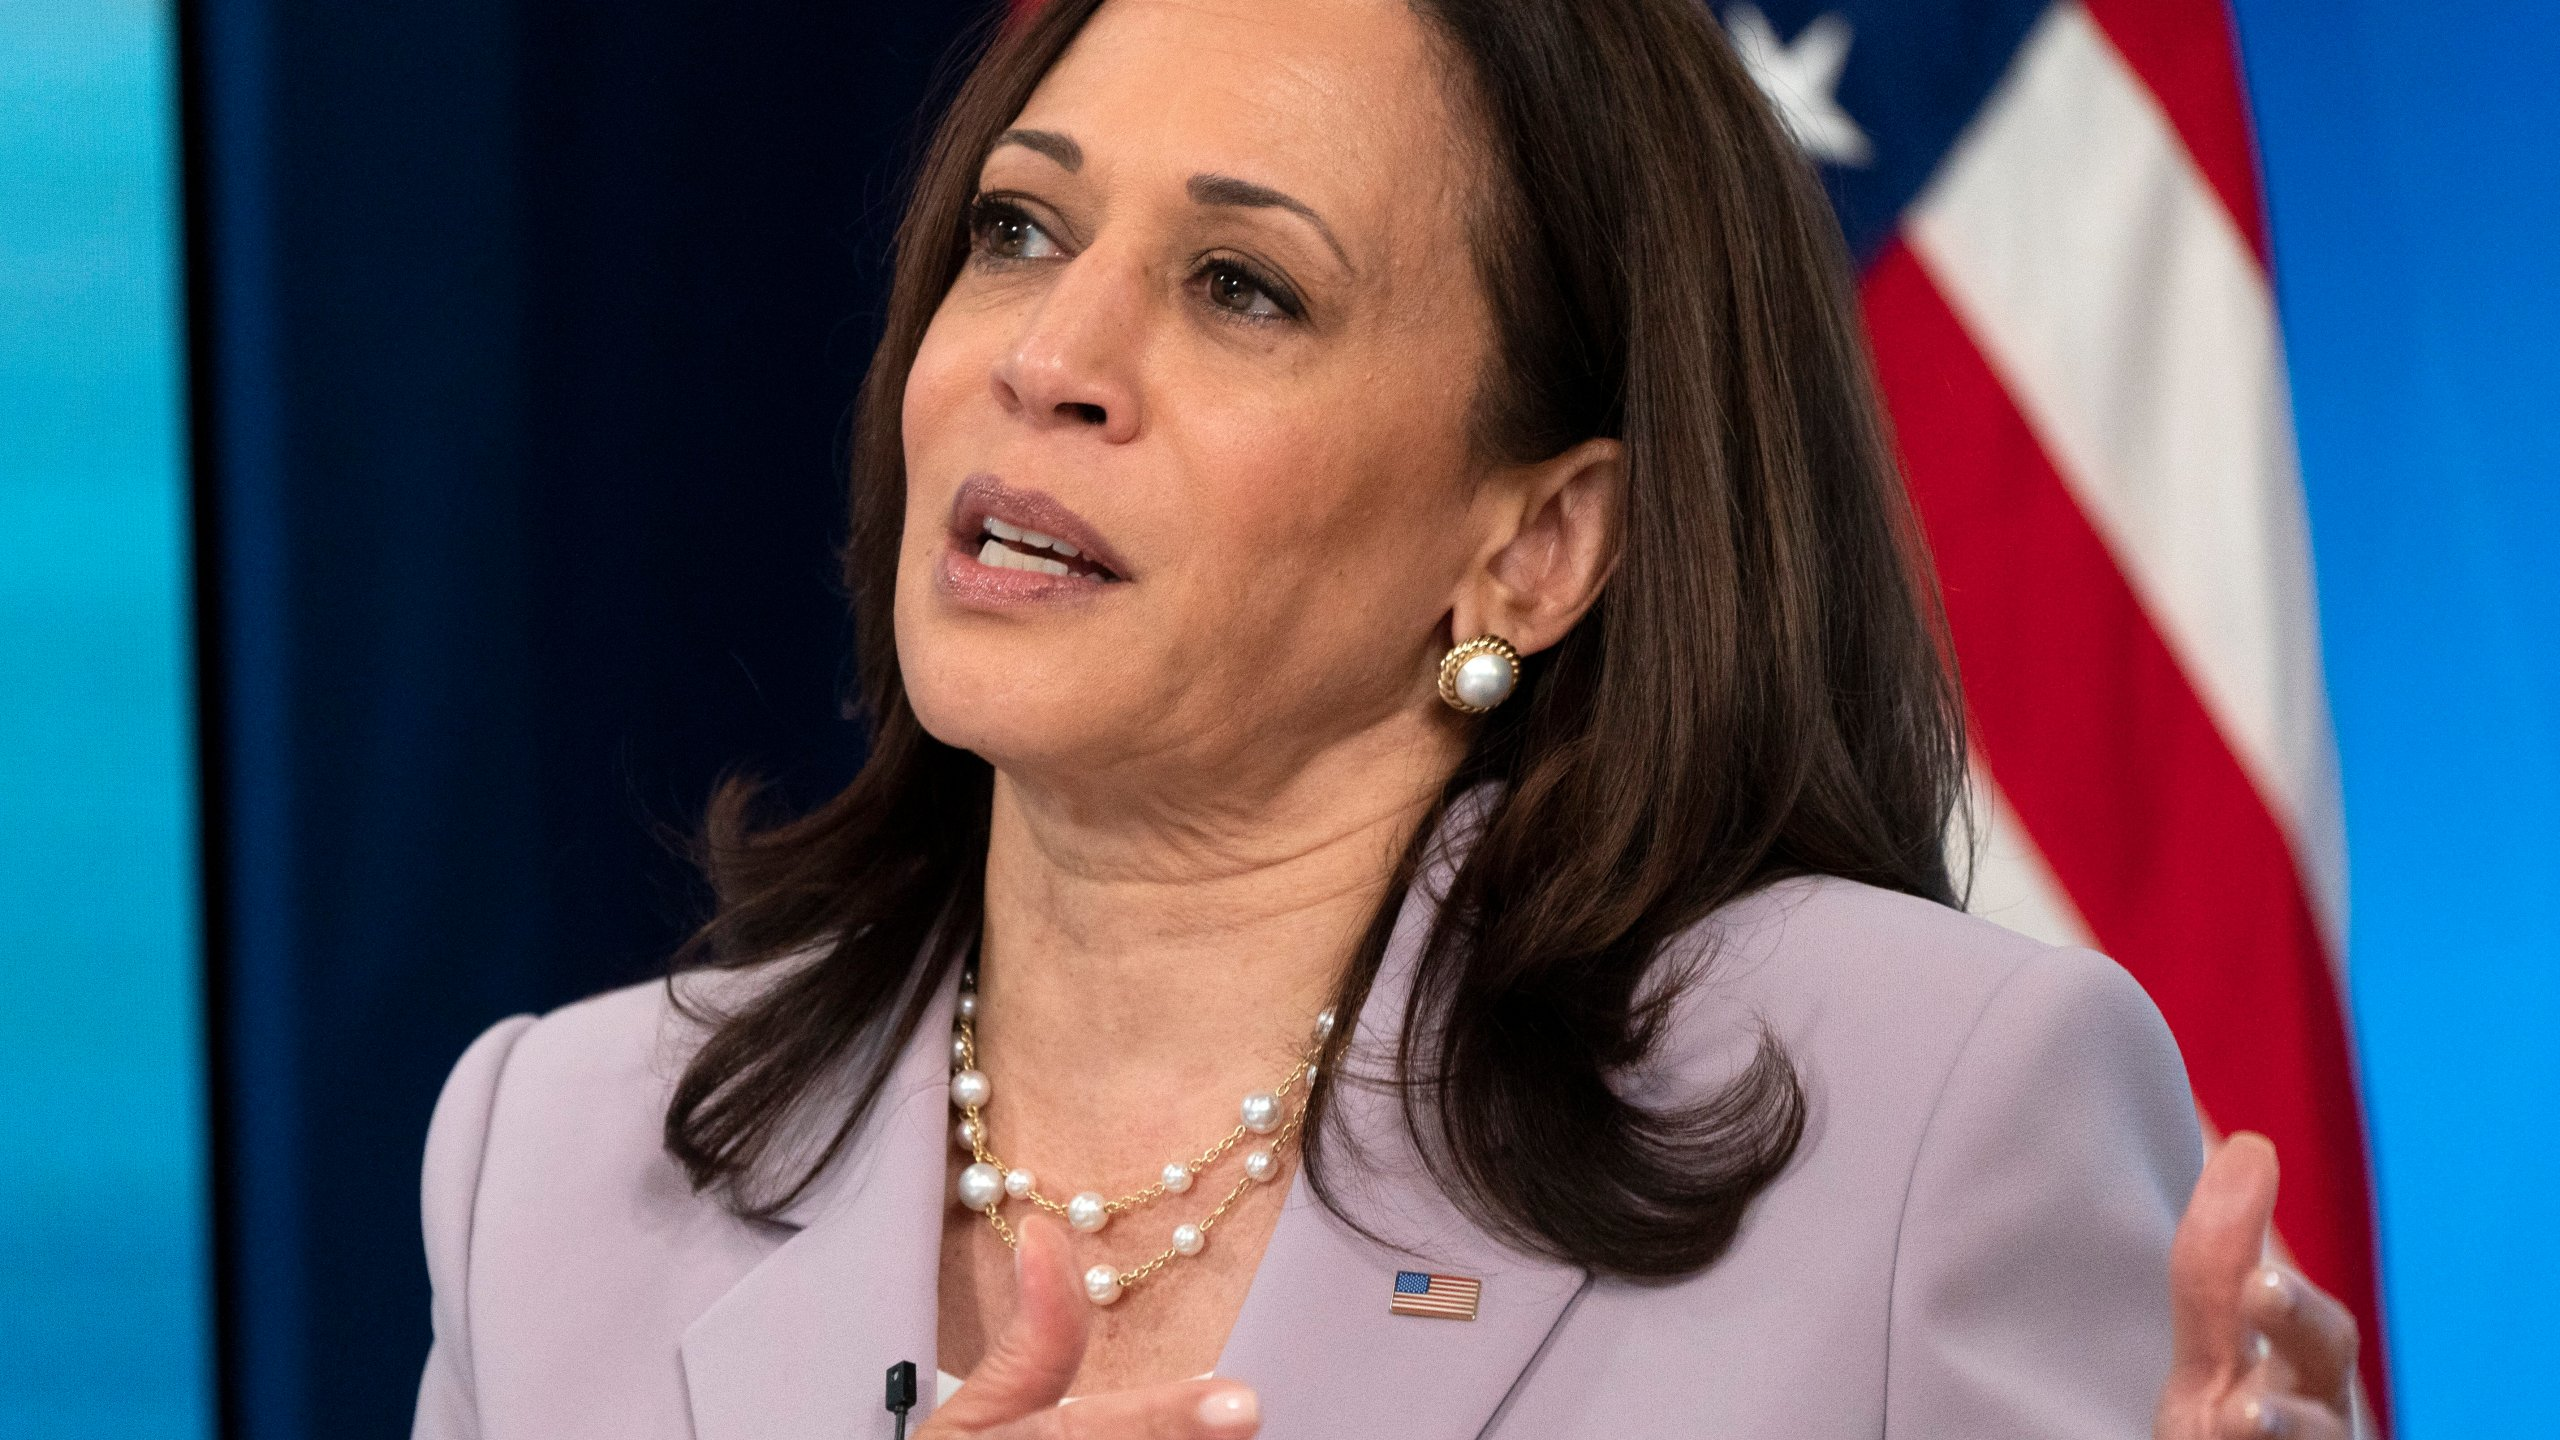 Vice President Kamala Harrisspeaks about voting rights on June 23, 2021, from the South Court Auditorium on the White House complex. (Jacquelyn Martin/Associated Press)